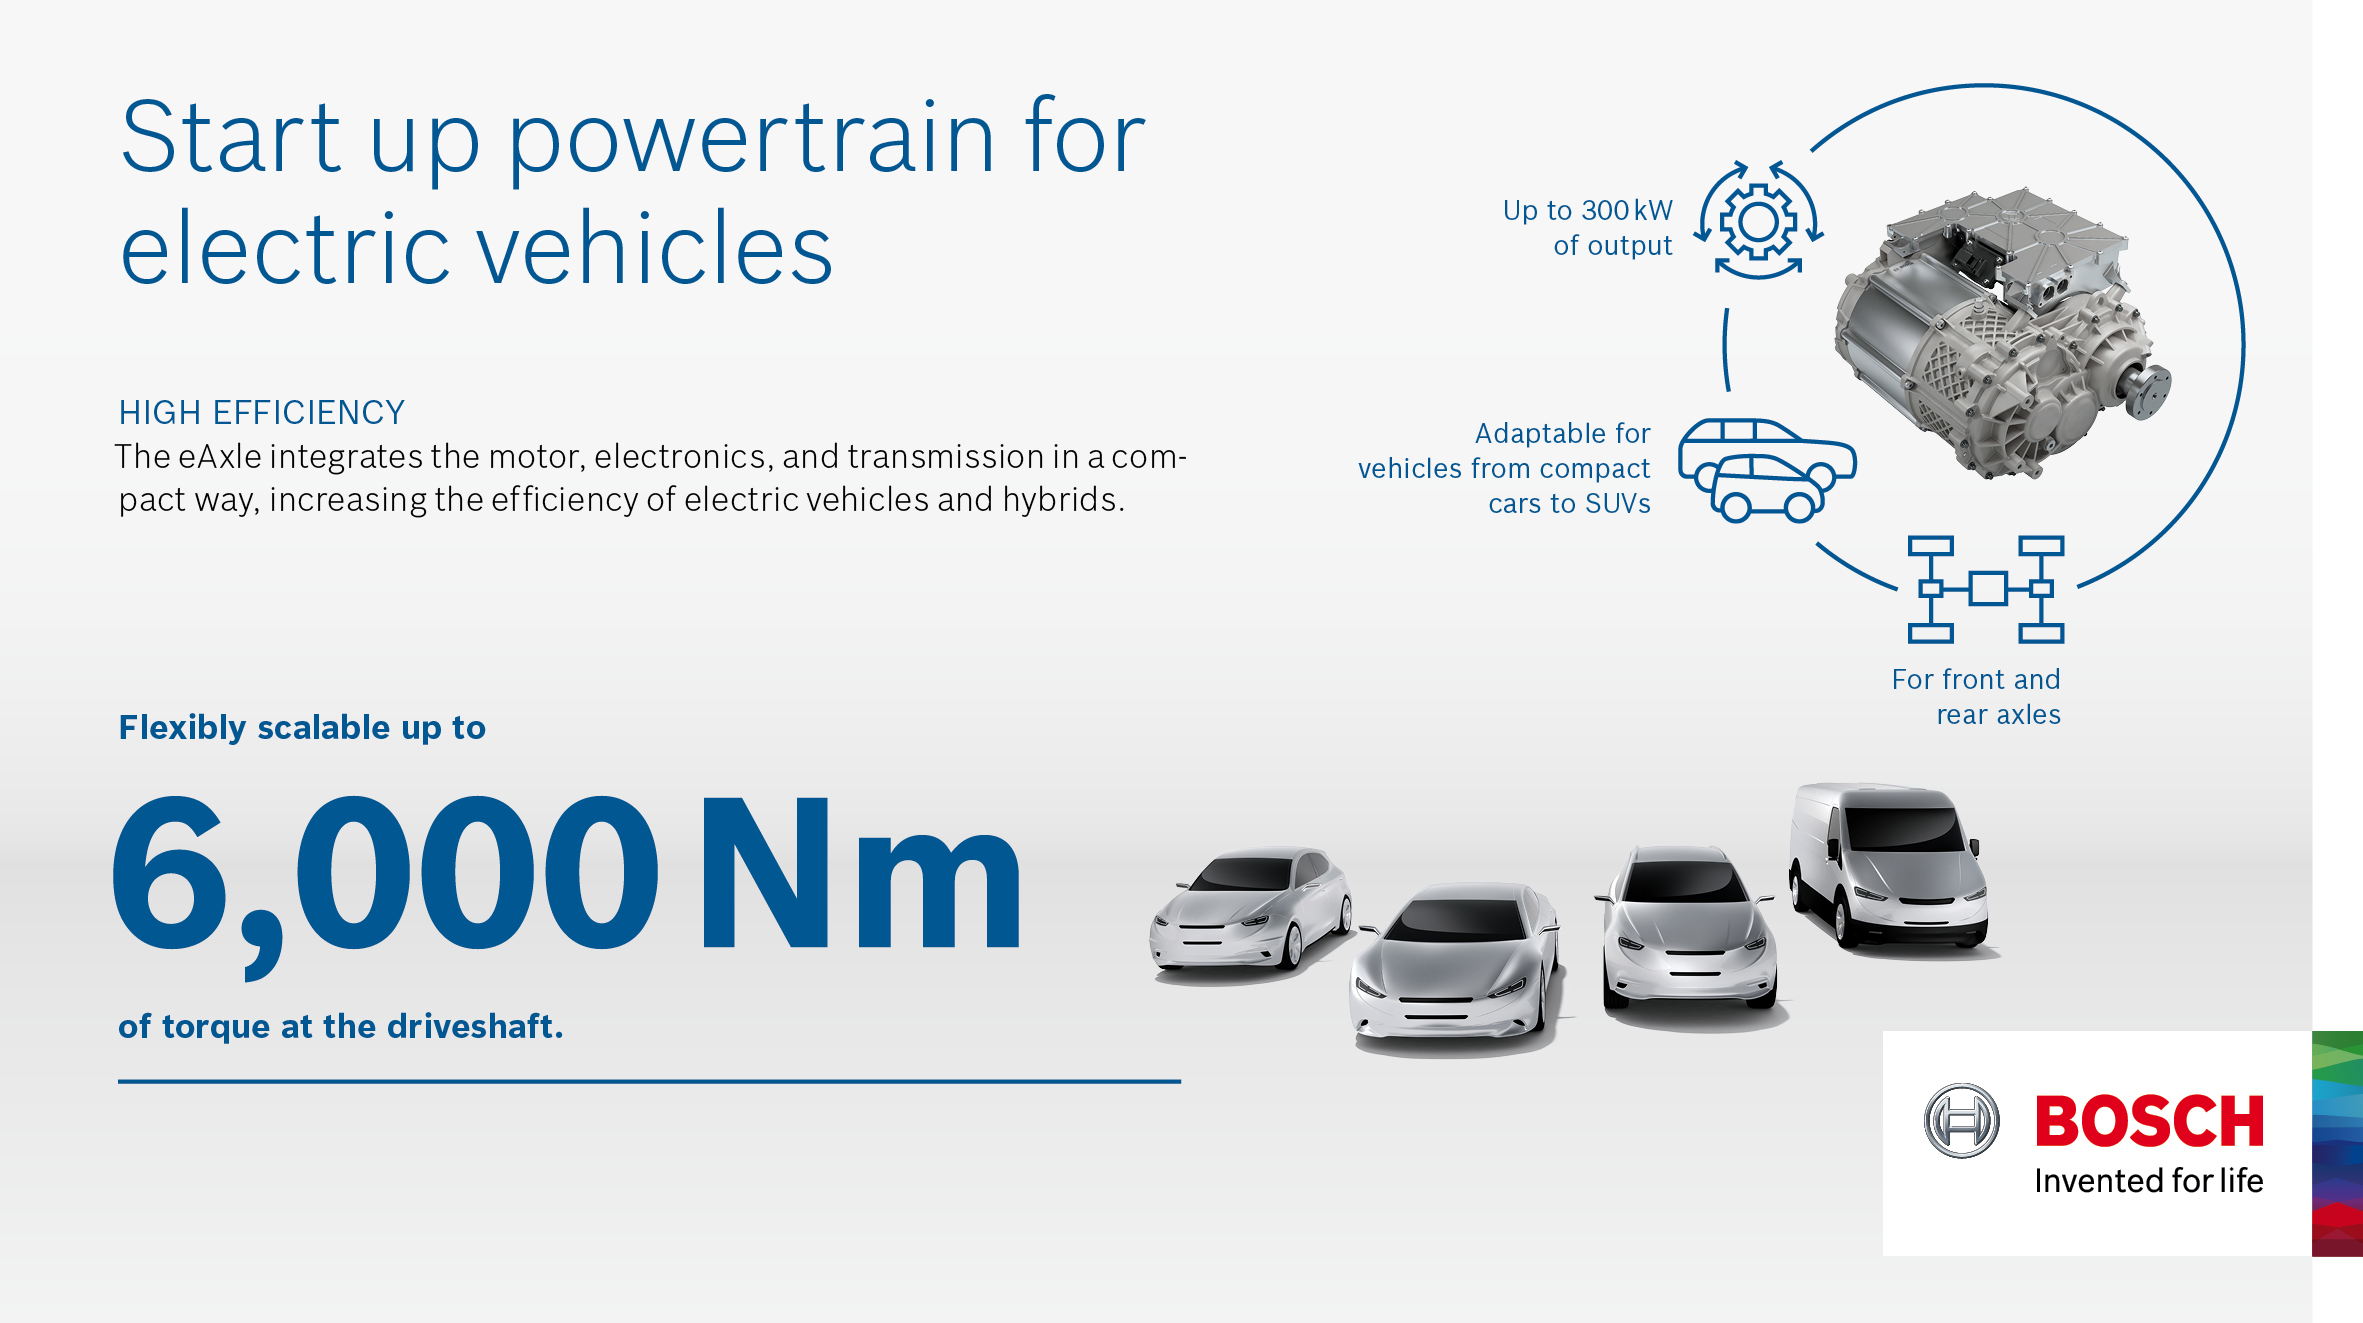 The start up powertrain for electric cars the bosch e Electric motor solutions